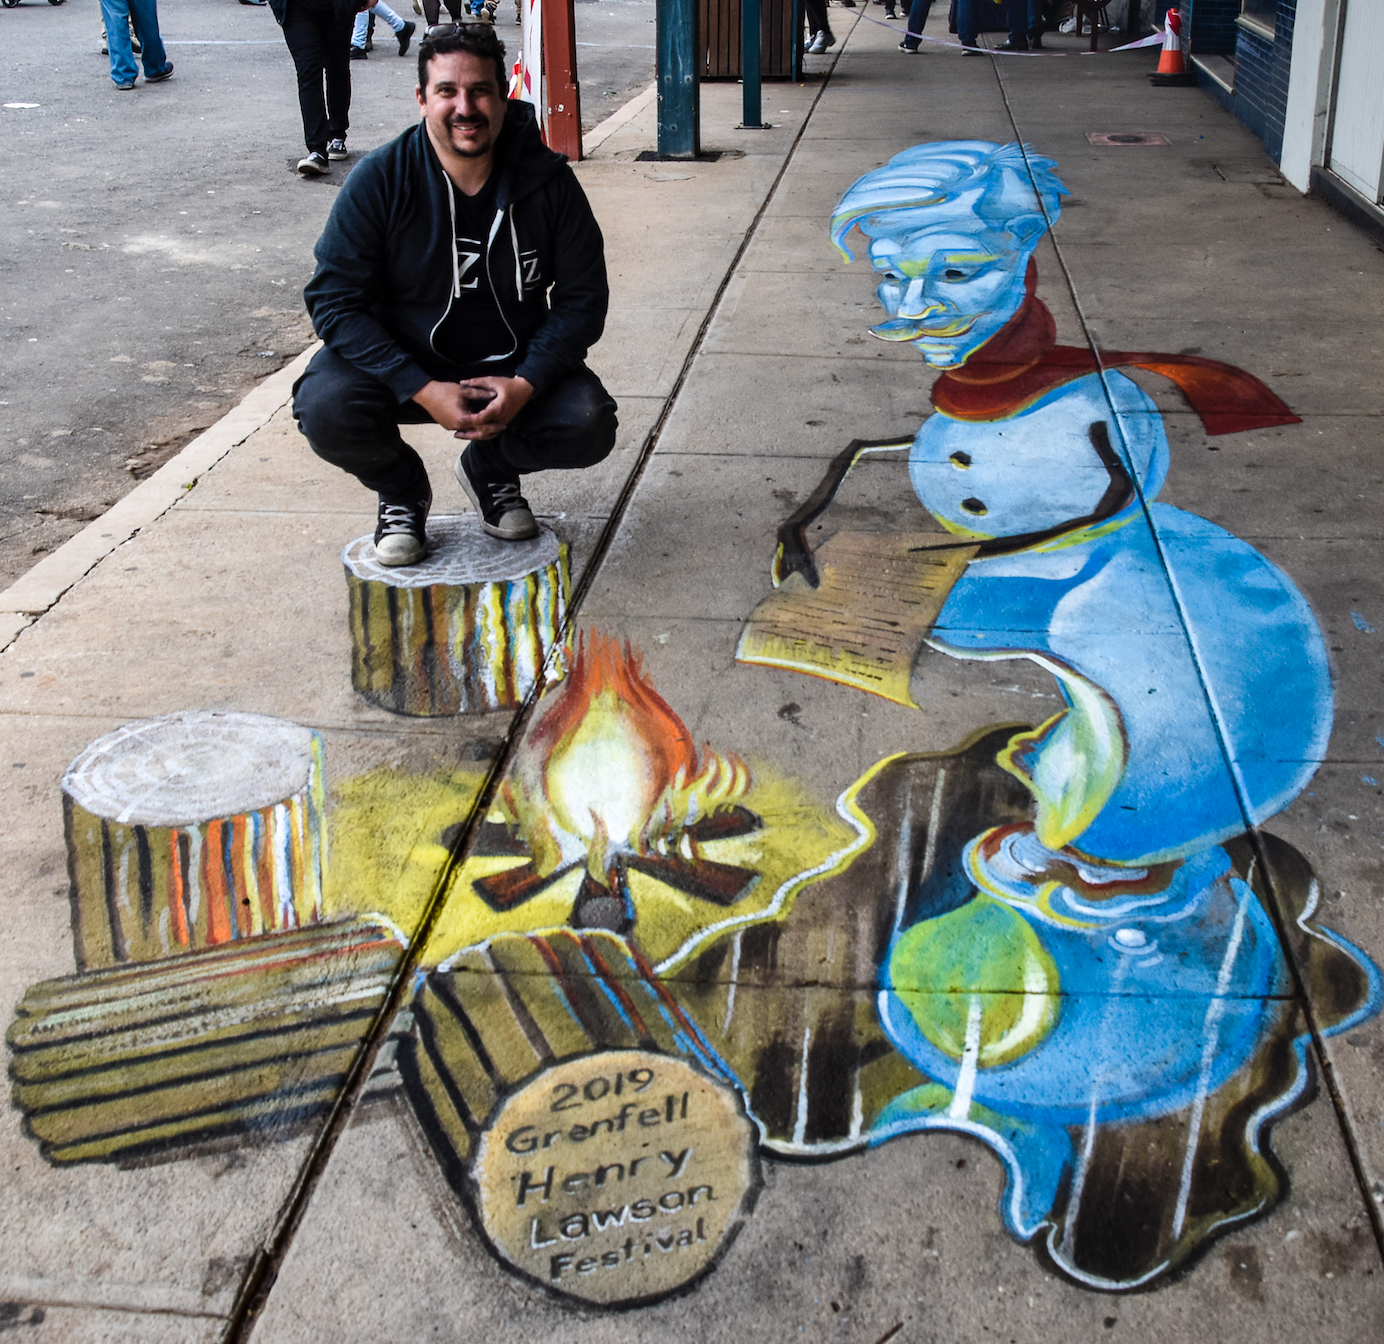 Chalk artist, Anton Pulvirenti, with his brilliant blue snowman